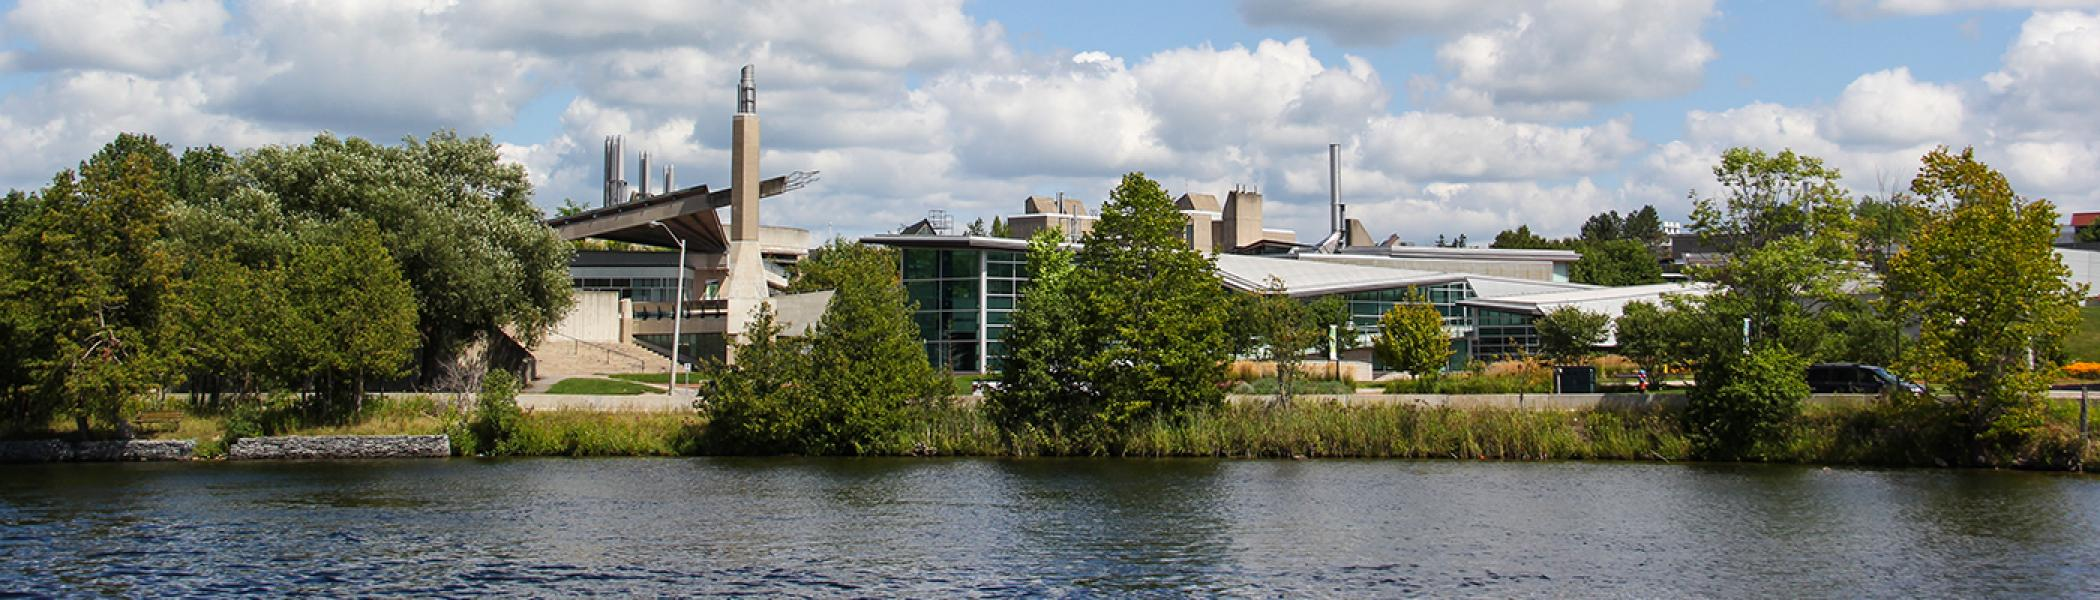 Exterior view of the Science complex from across the Otonabee river on a bright summer's day with blue sky and blue water